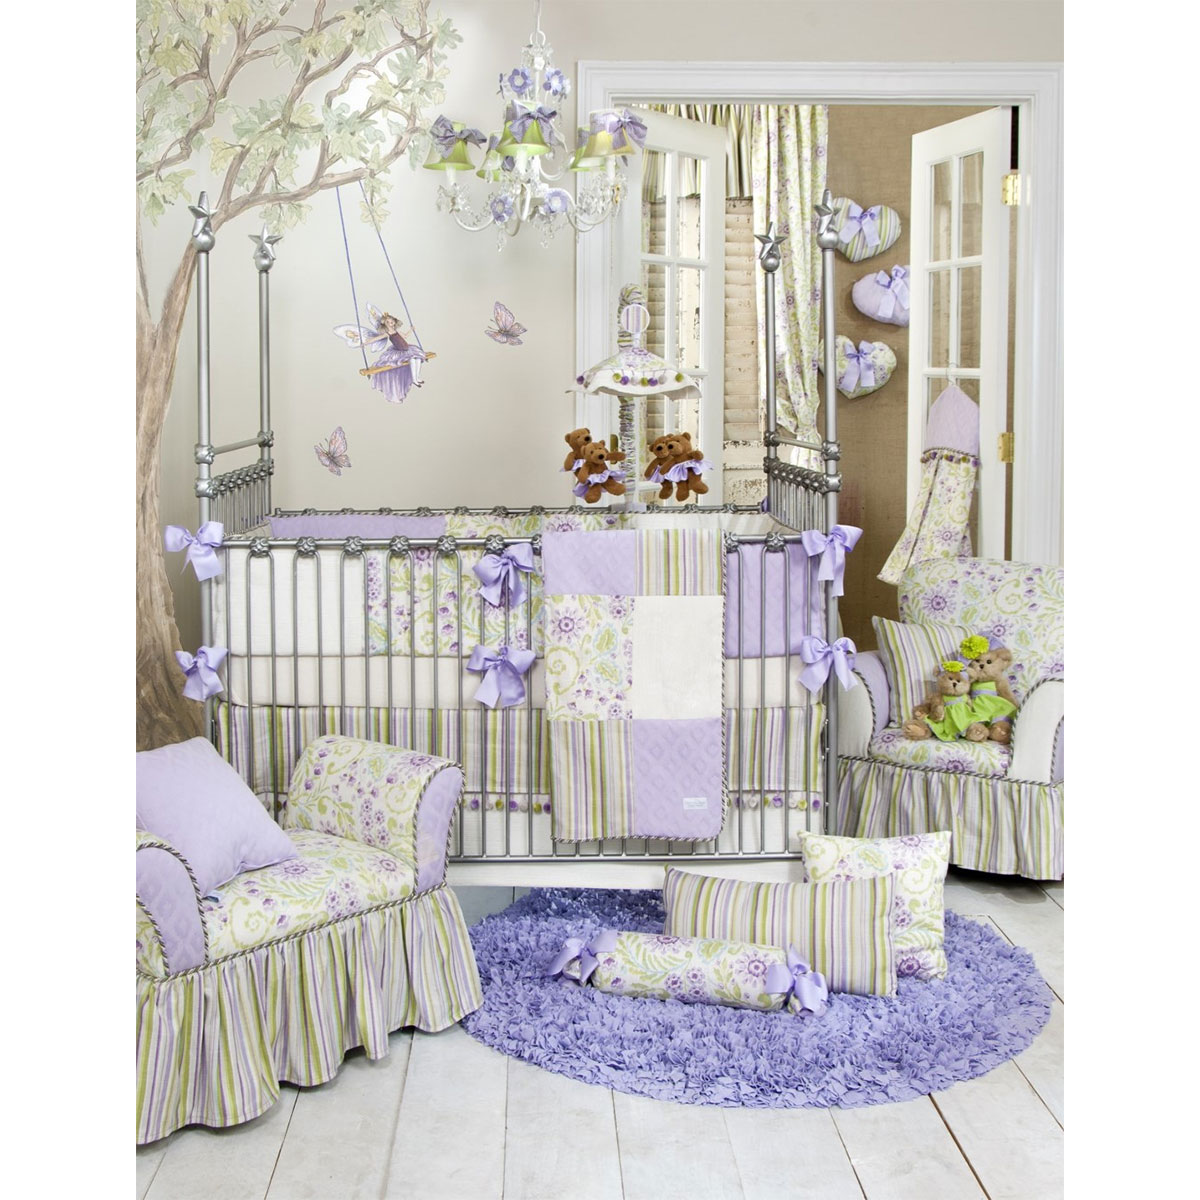 crib mint cribs set bedding bed mermaid girl products baby sets collections purple and